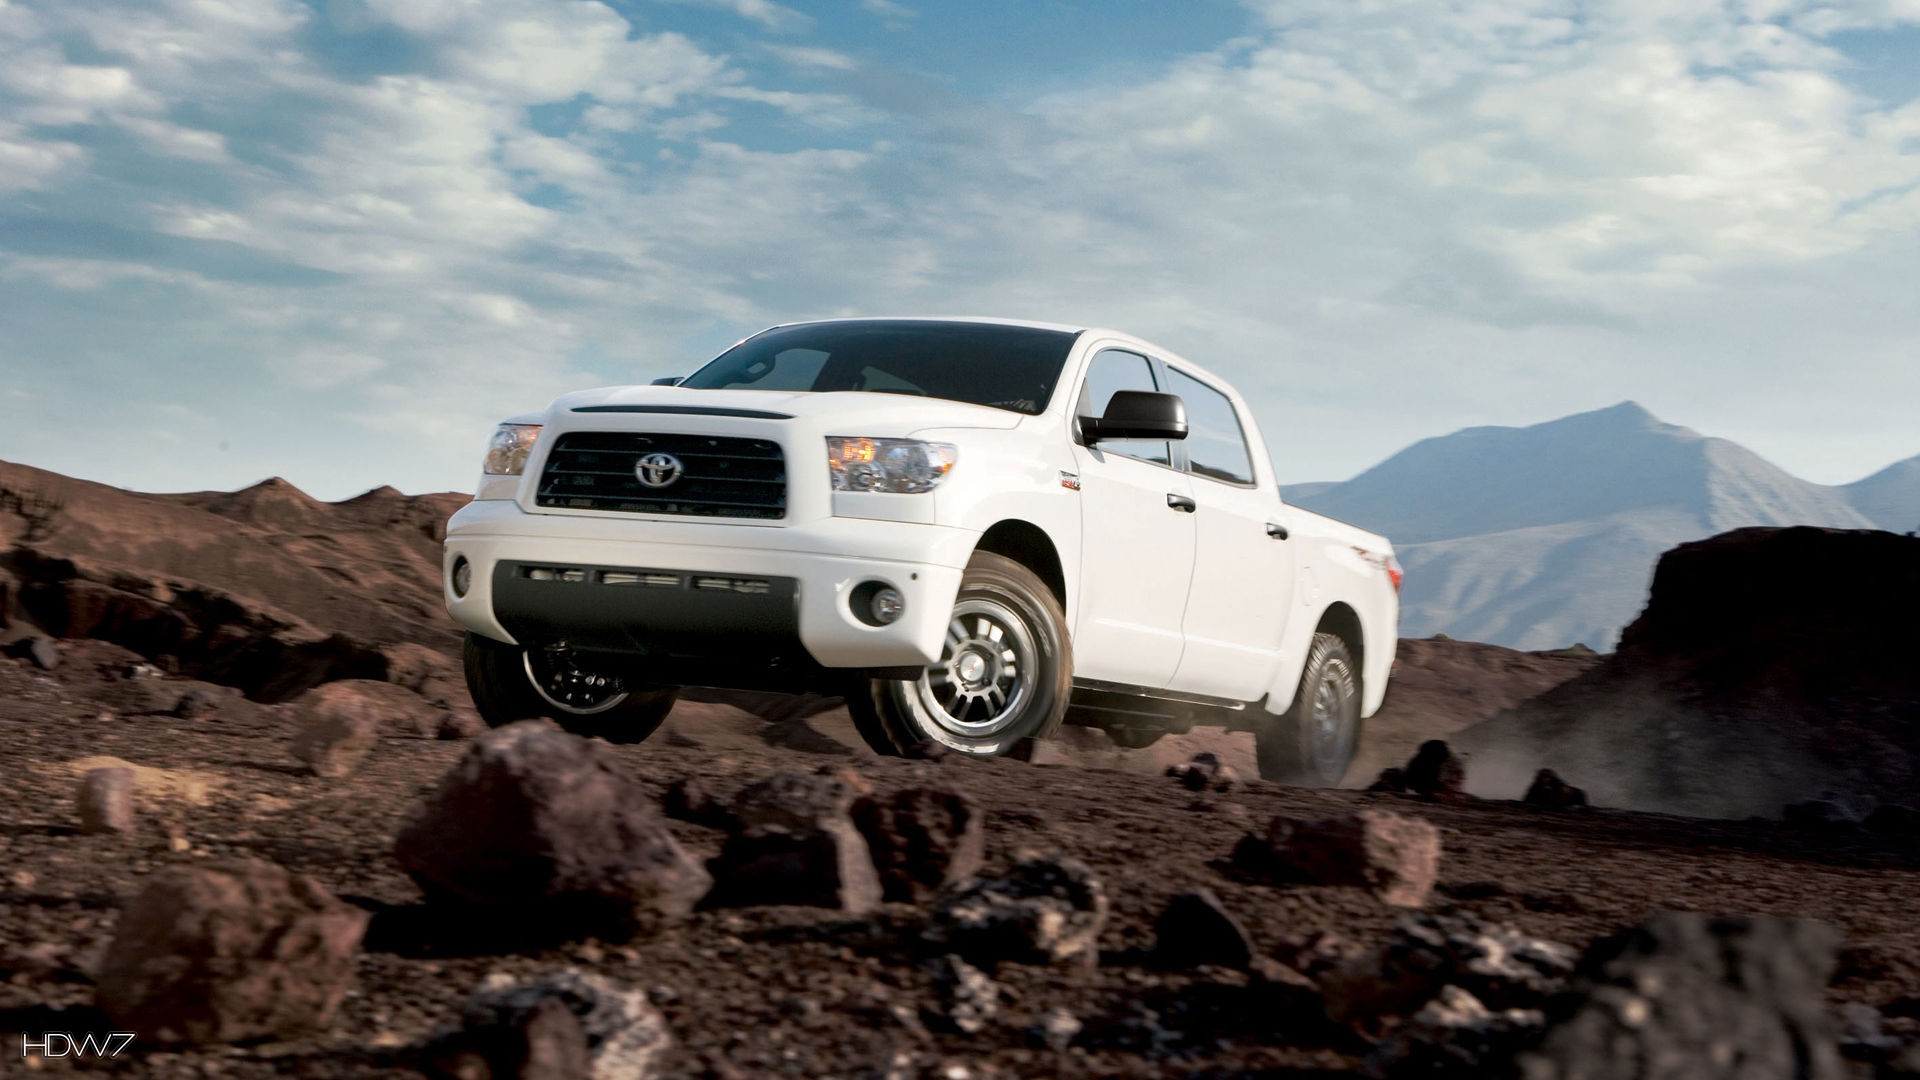 Toyota Tundra Wallpapers and Background Images   stmednet 1920x1080